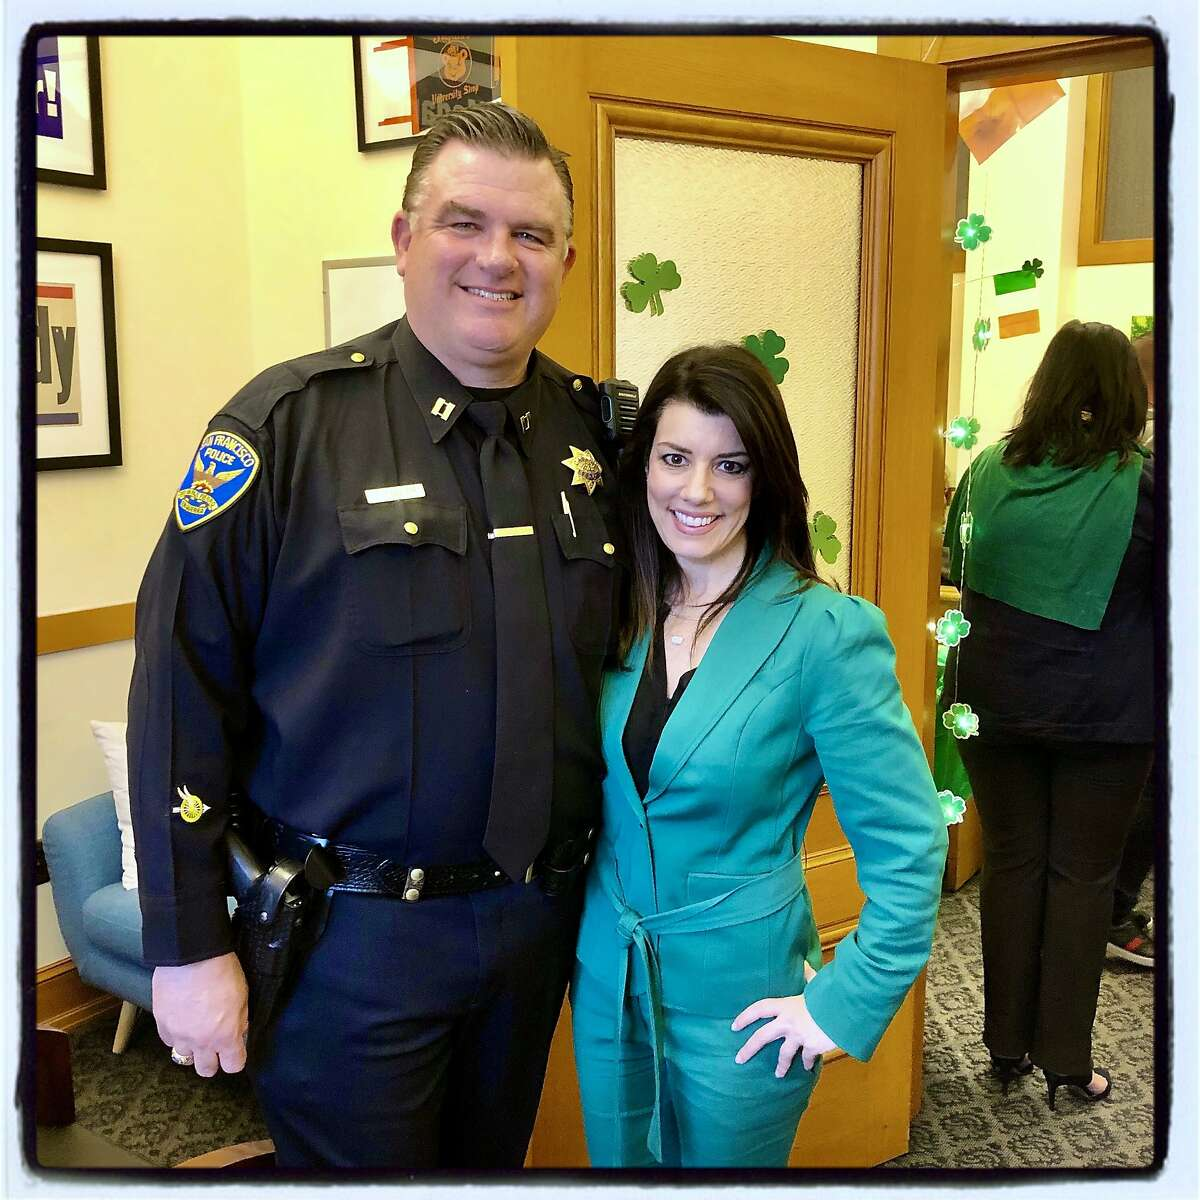 Irish Soda bread baker and SFPD Northern Station Captain Joe Engler at a flag-raising post-party hosted by Supervisor Catherine Stefani. March 6, 2020.